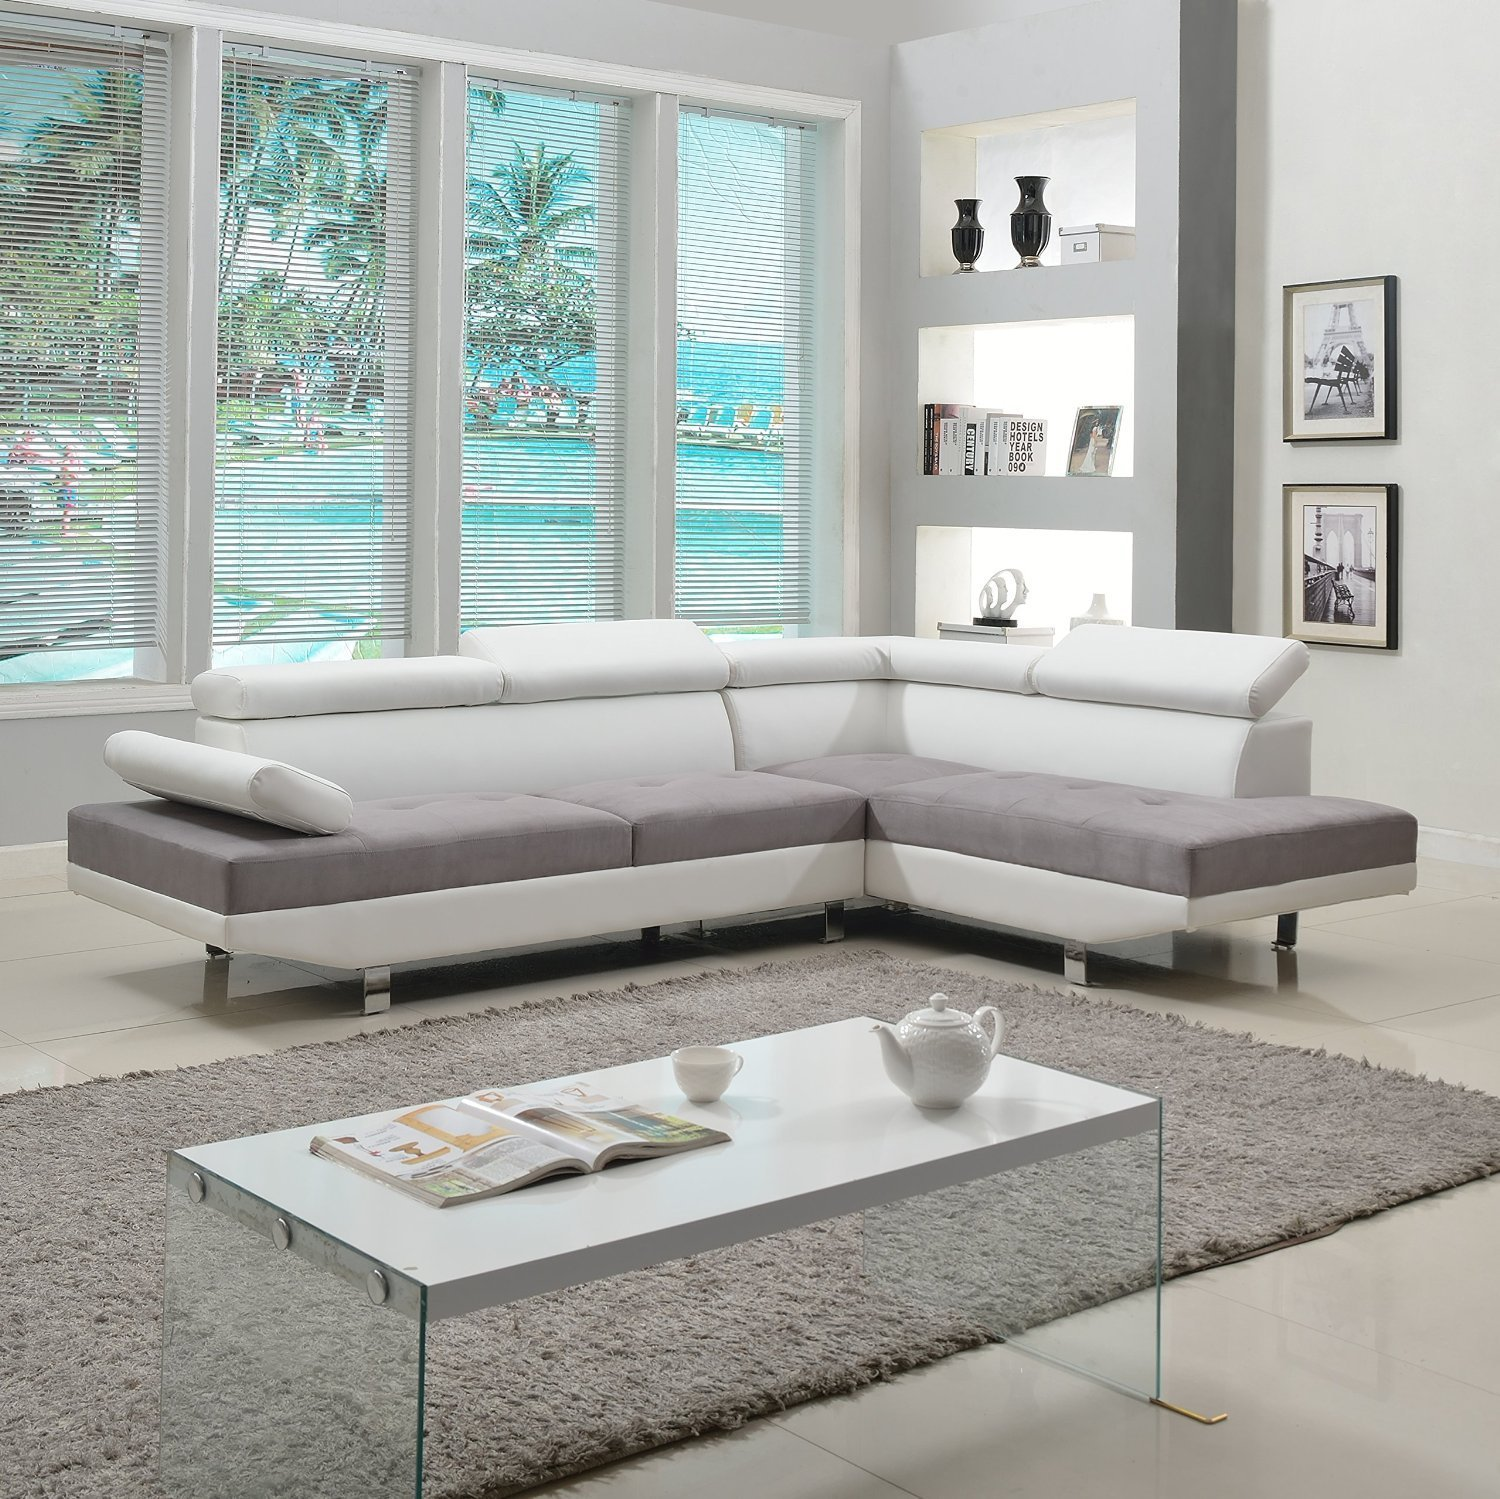 Modern living room furniture review find the best one for Living room of satoshi review